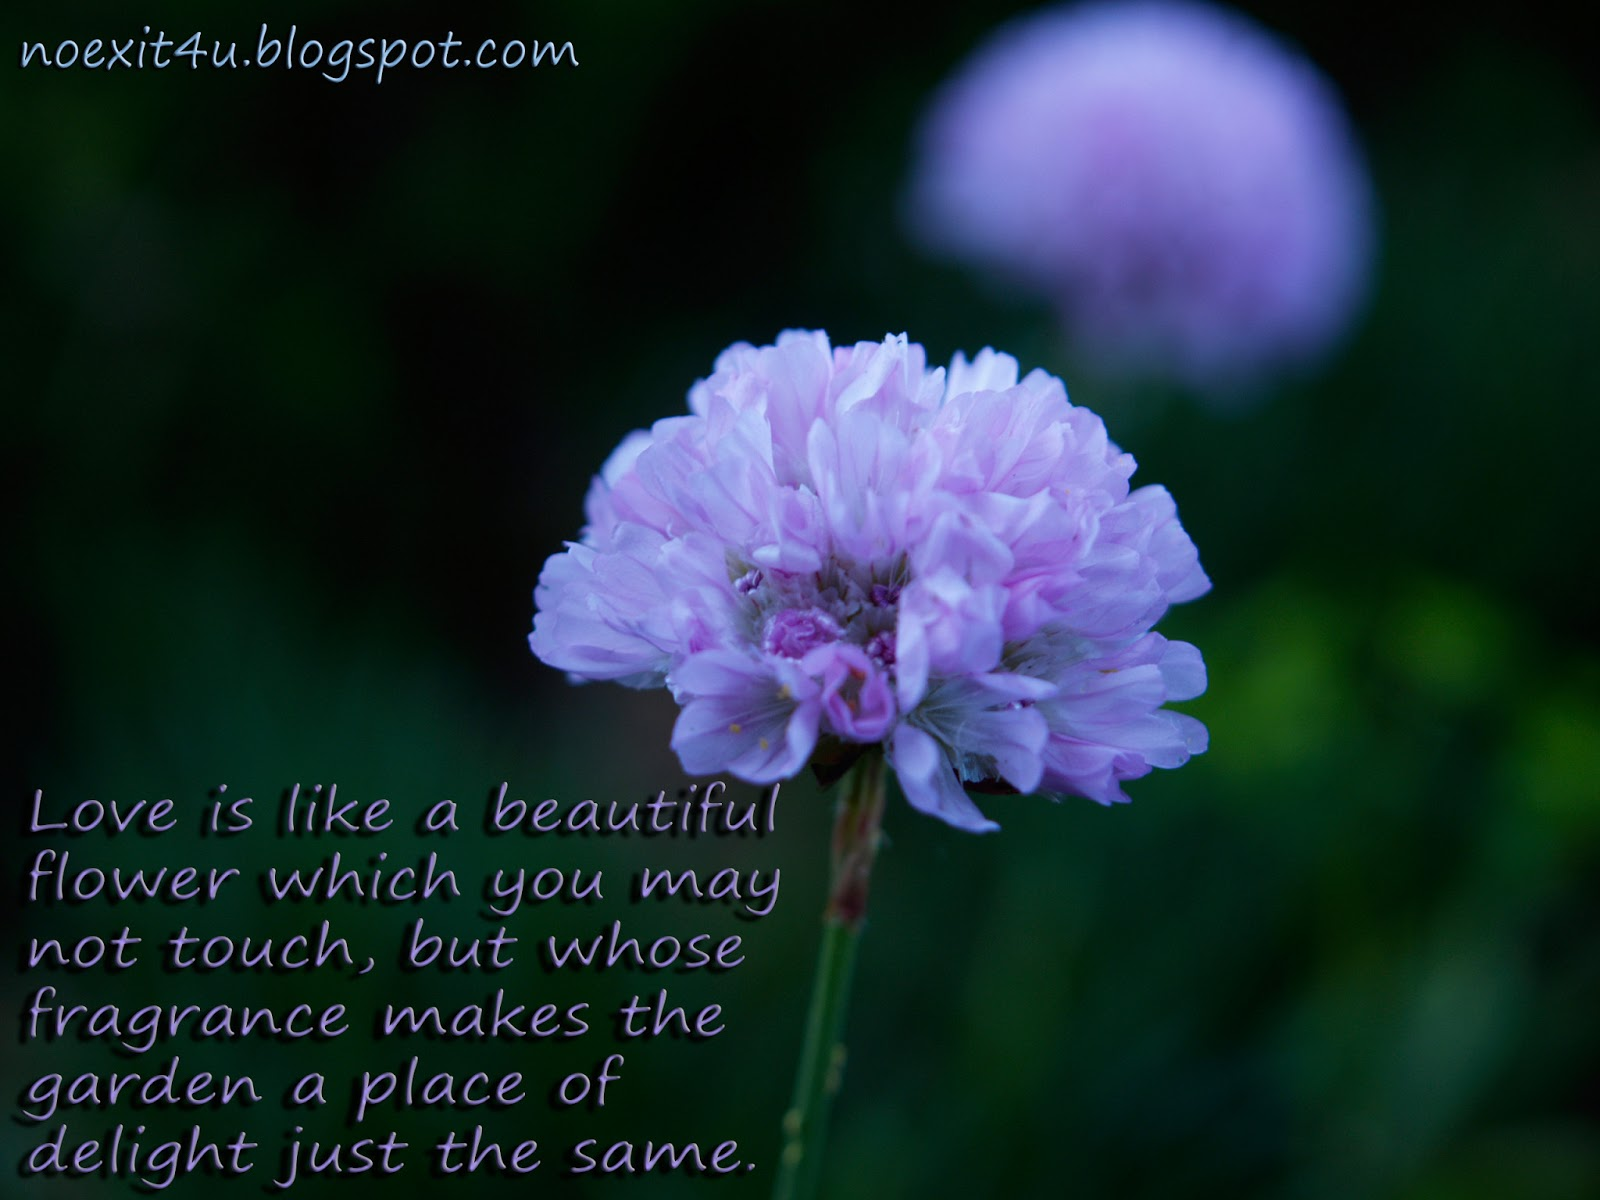 flower quotes hd hdflower com